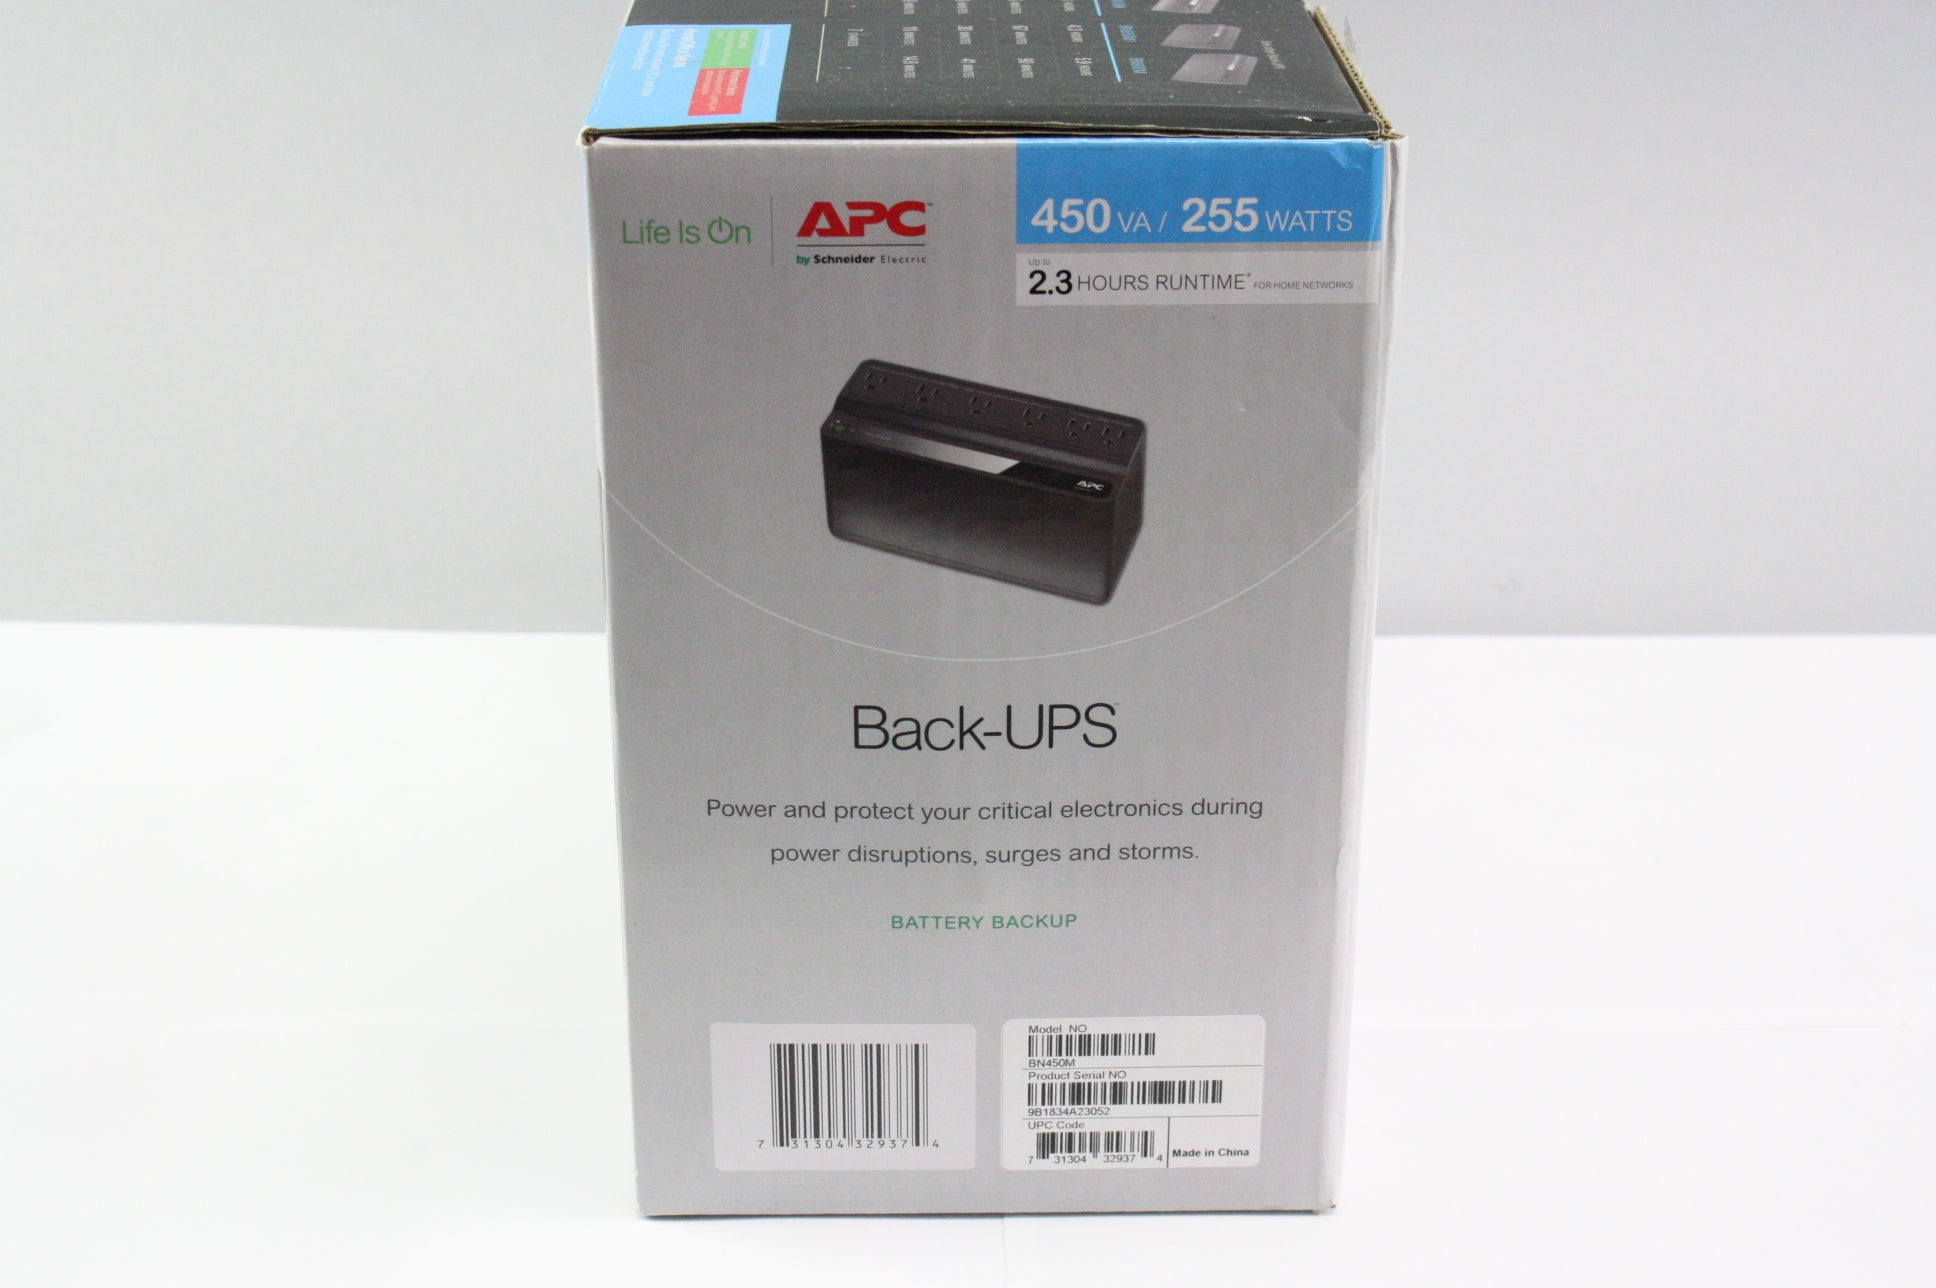 APC - Back-UPS 450VA Battery Back-Up System - Black - New In Box